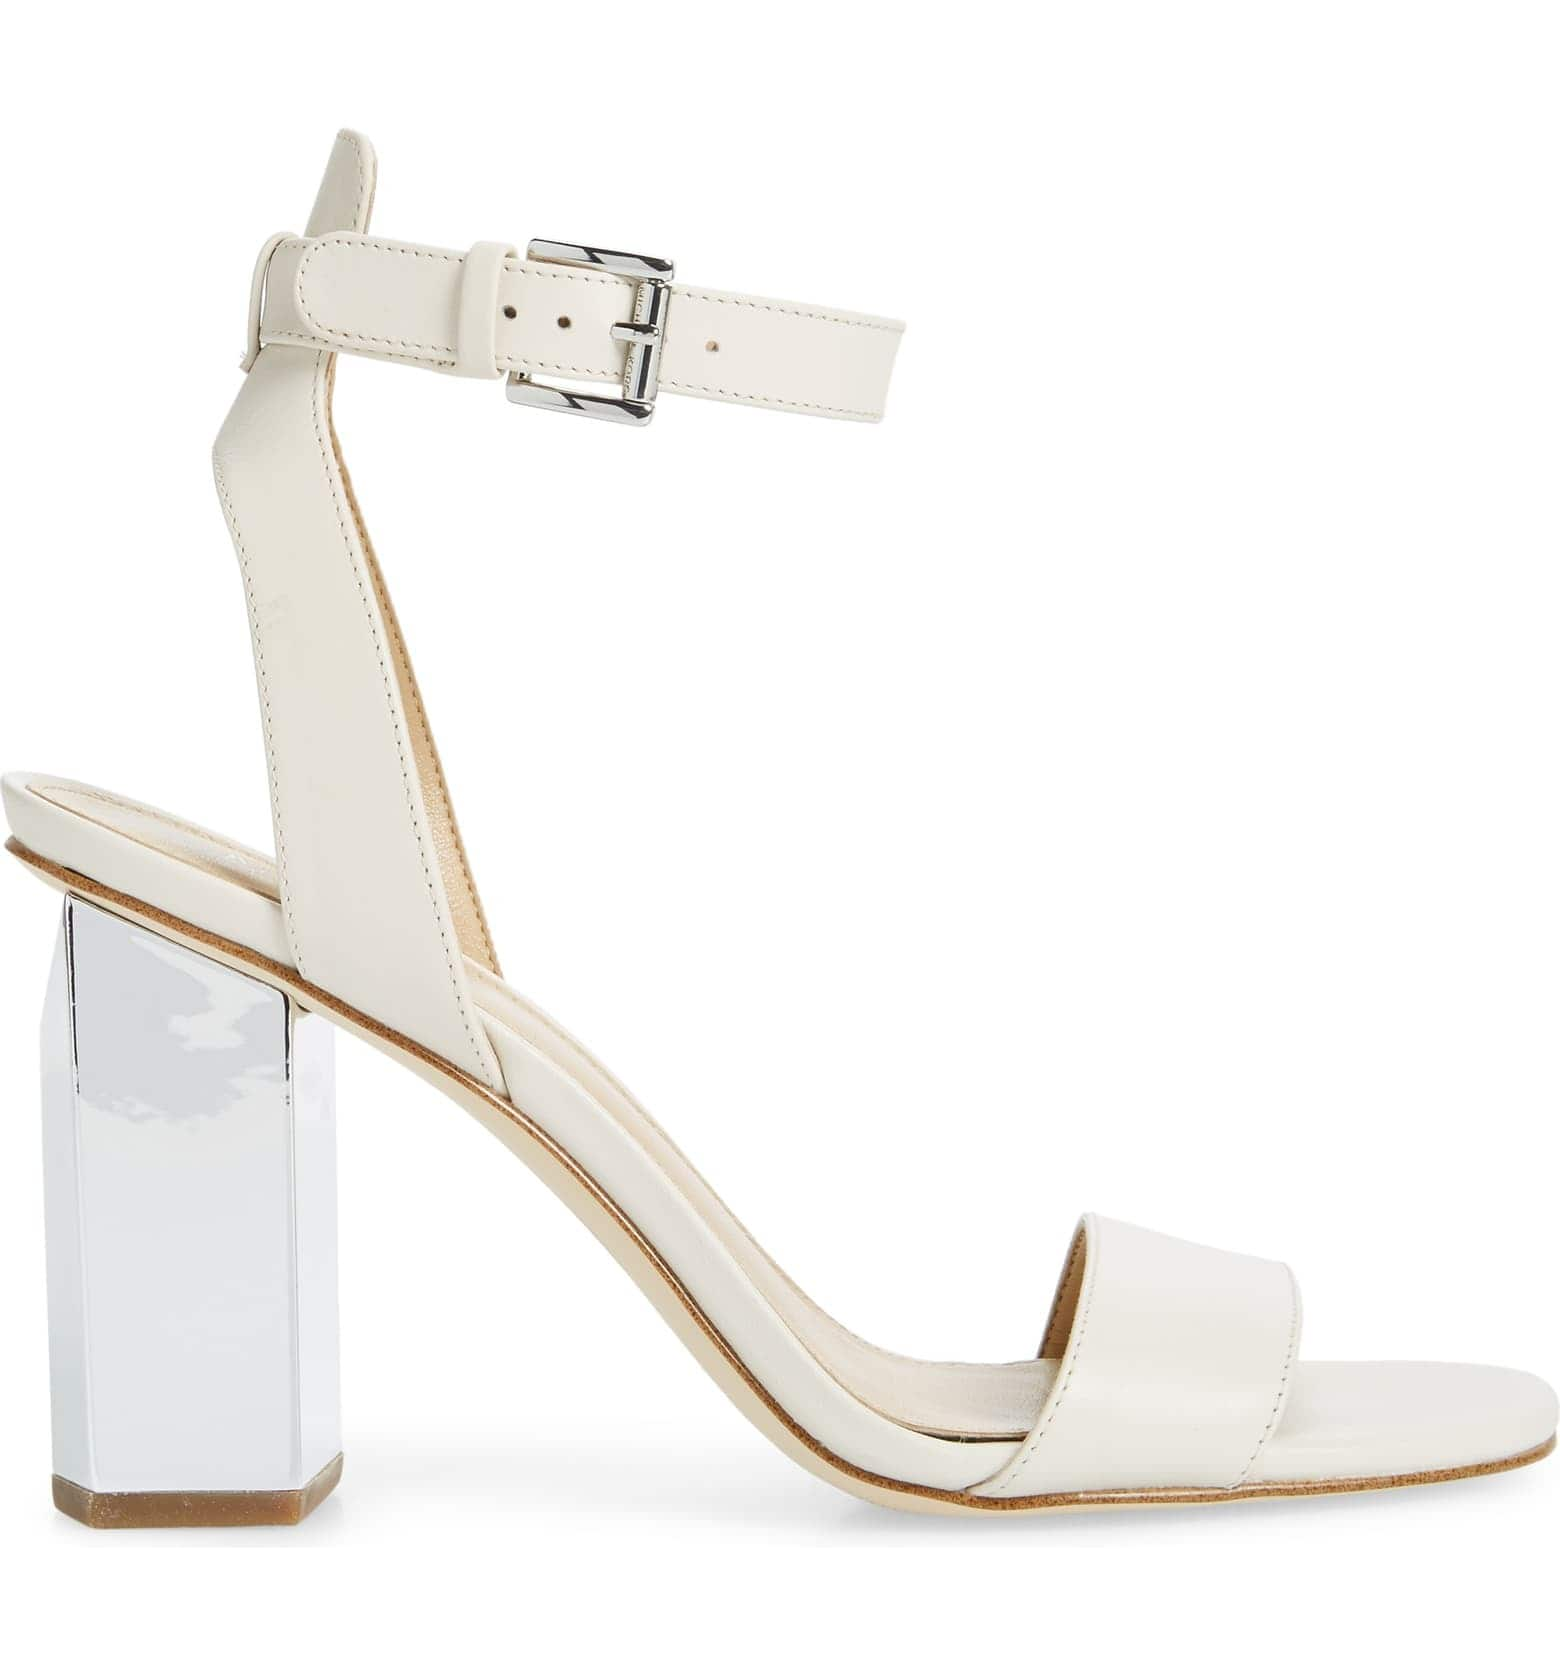 MICHAEL KORS Petra Block Heel Sandal (Light Cream or Black) $37.50 + Free Shipping